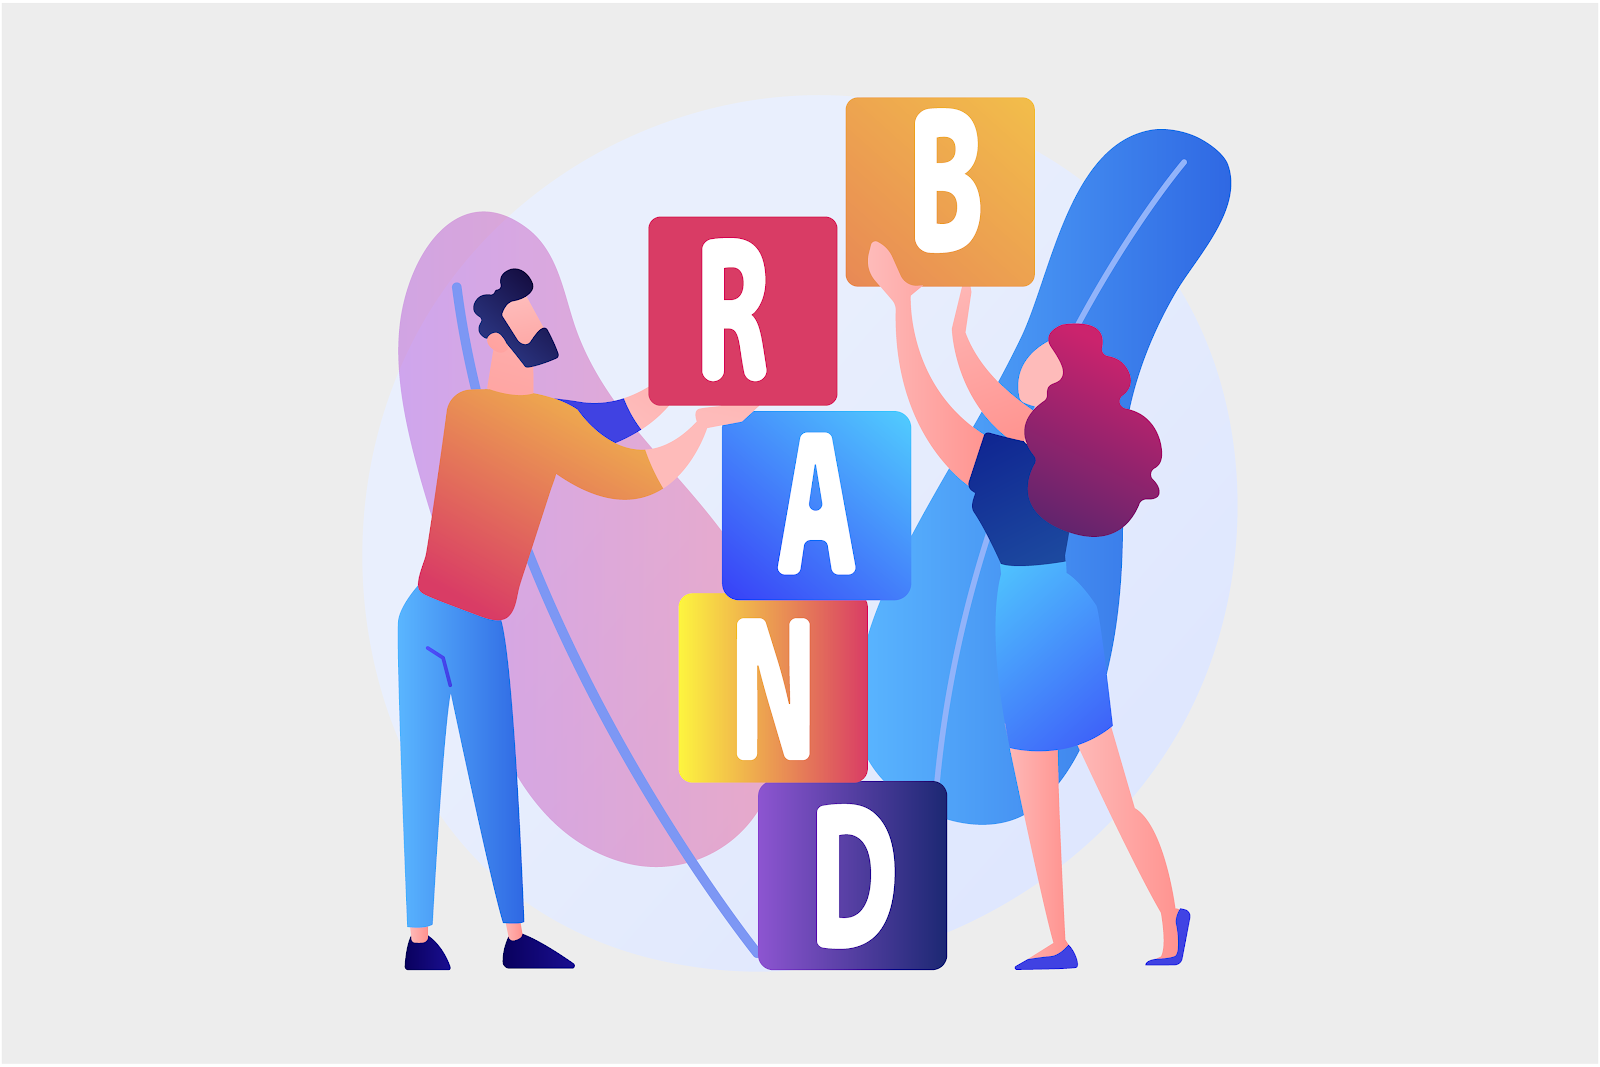 Team working together to build a brand. Image from Freepik